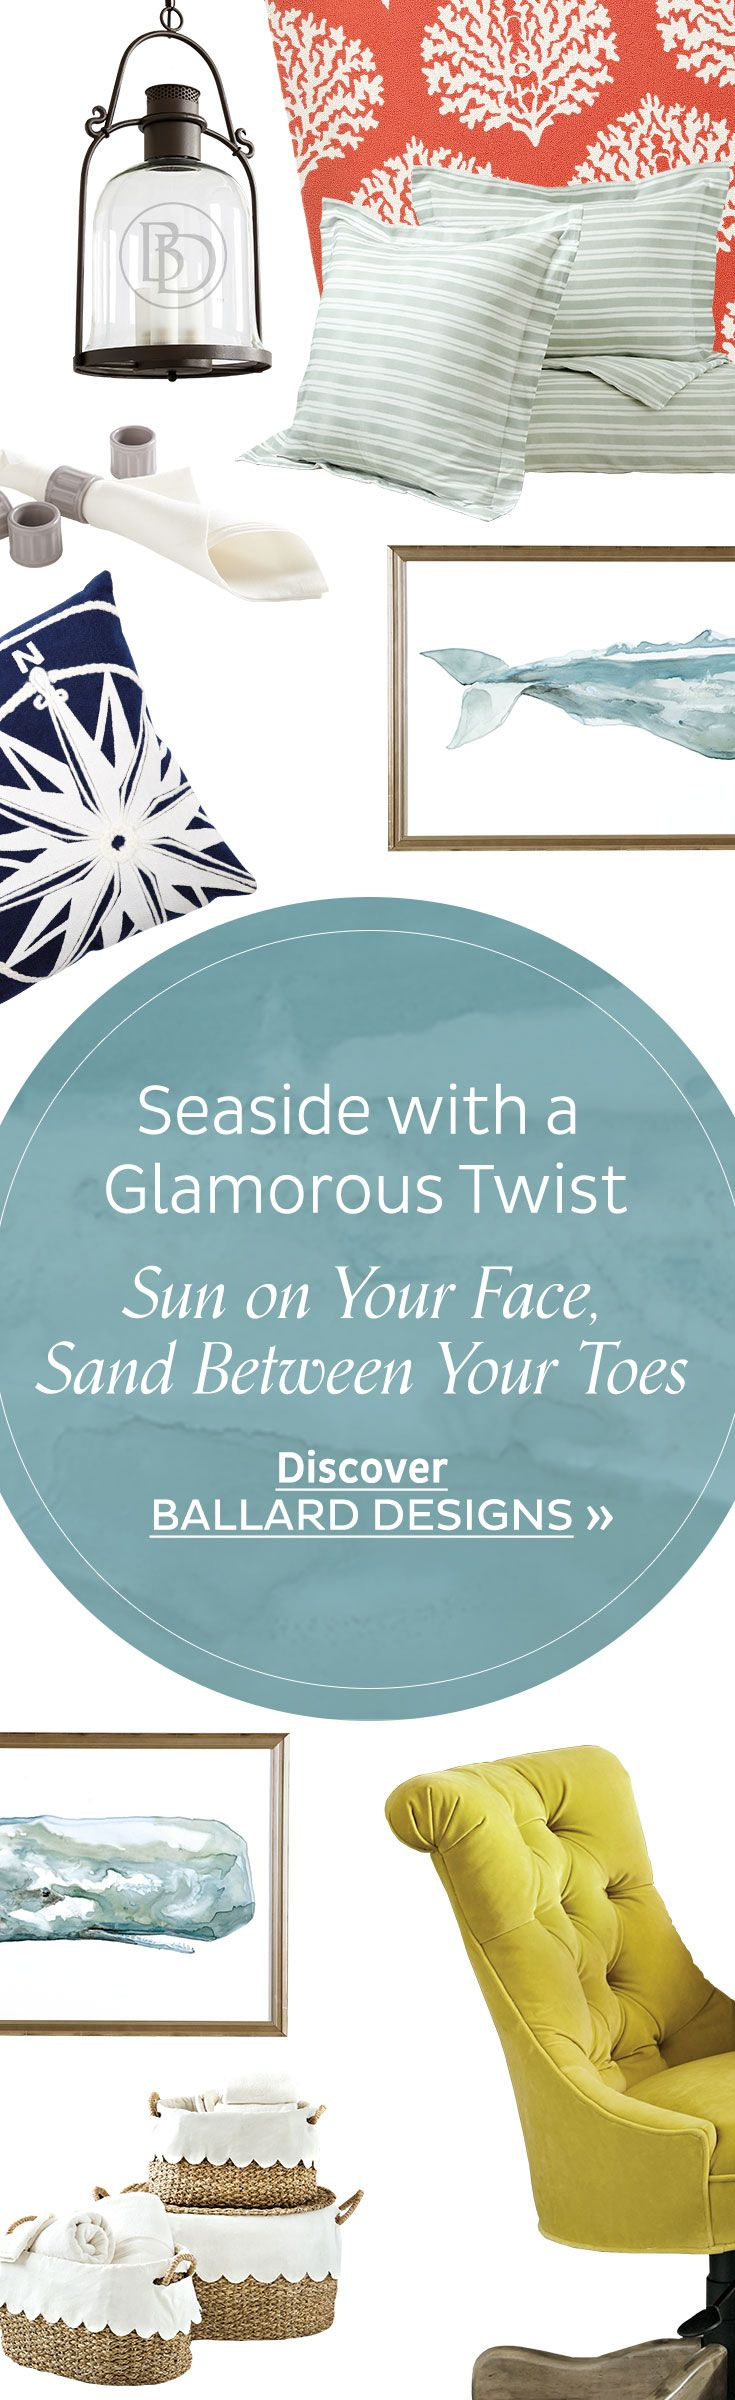 402 best beach décor images on Pinterest | Ballard designs, Beach ...